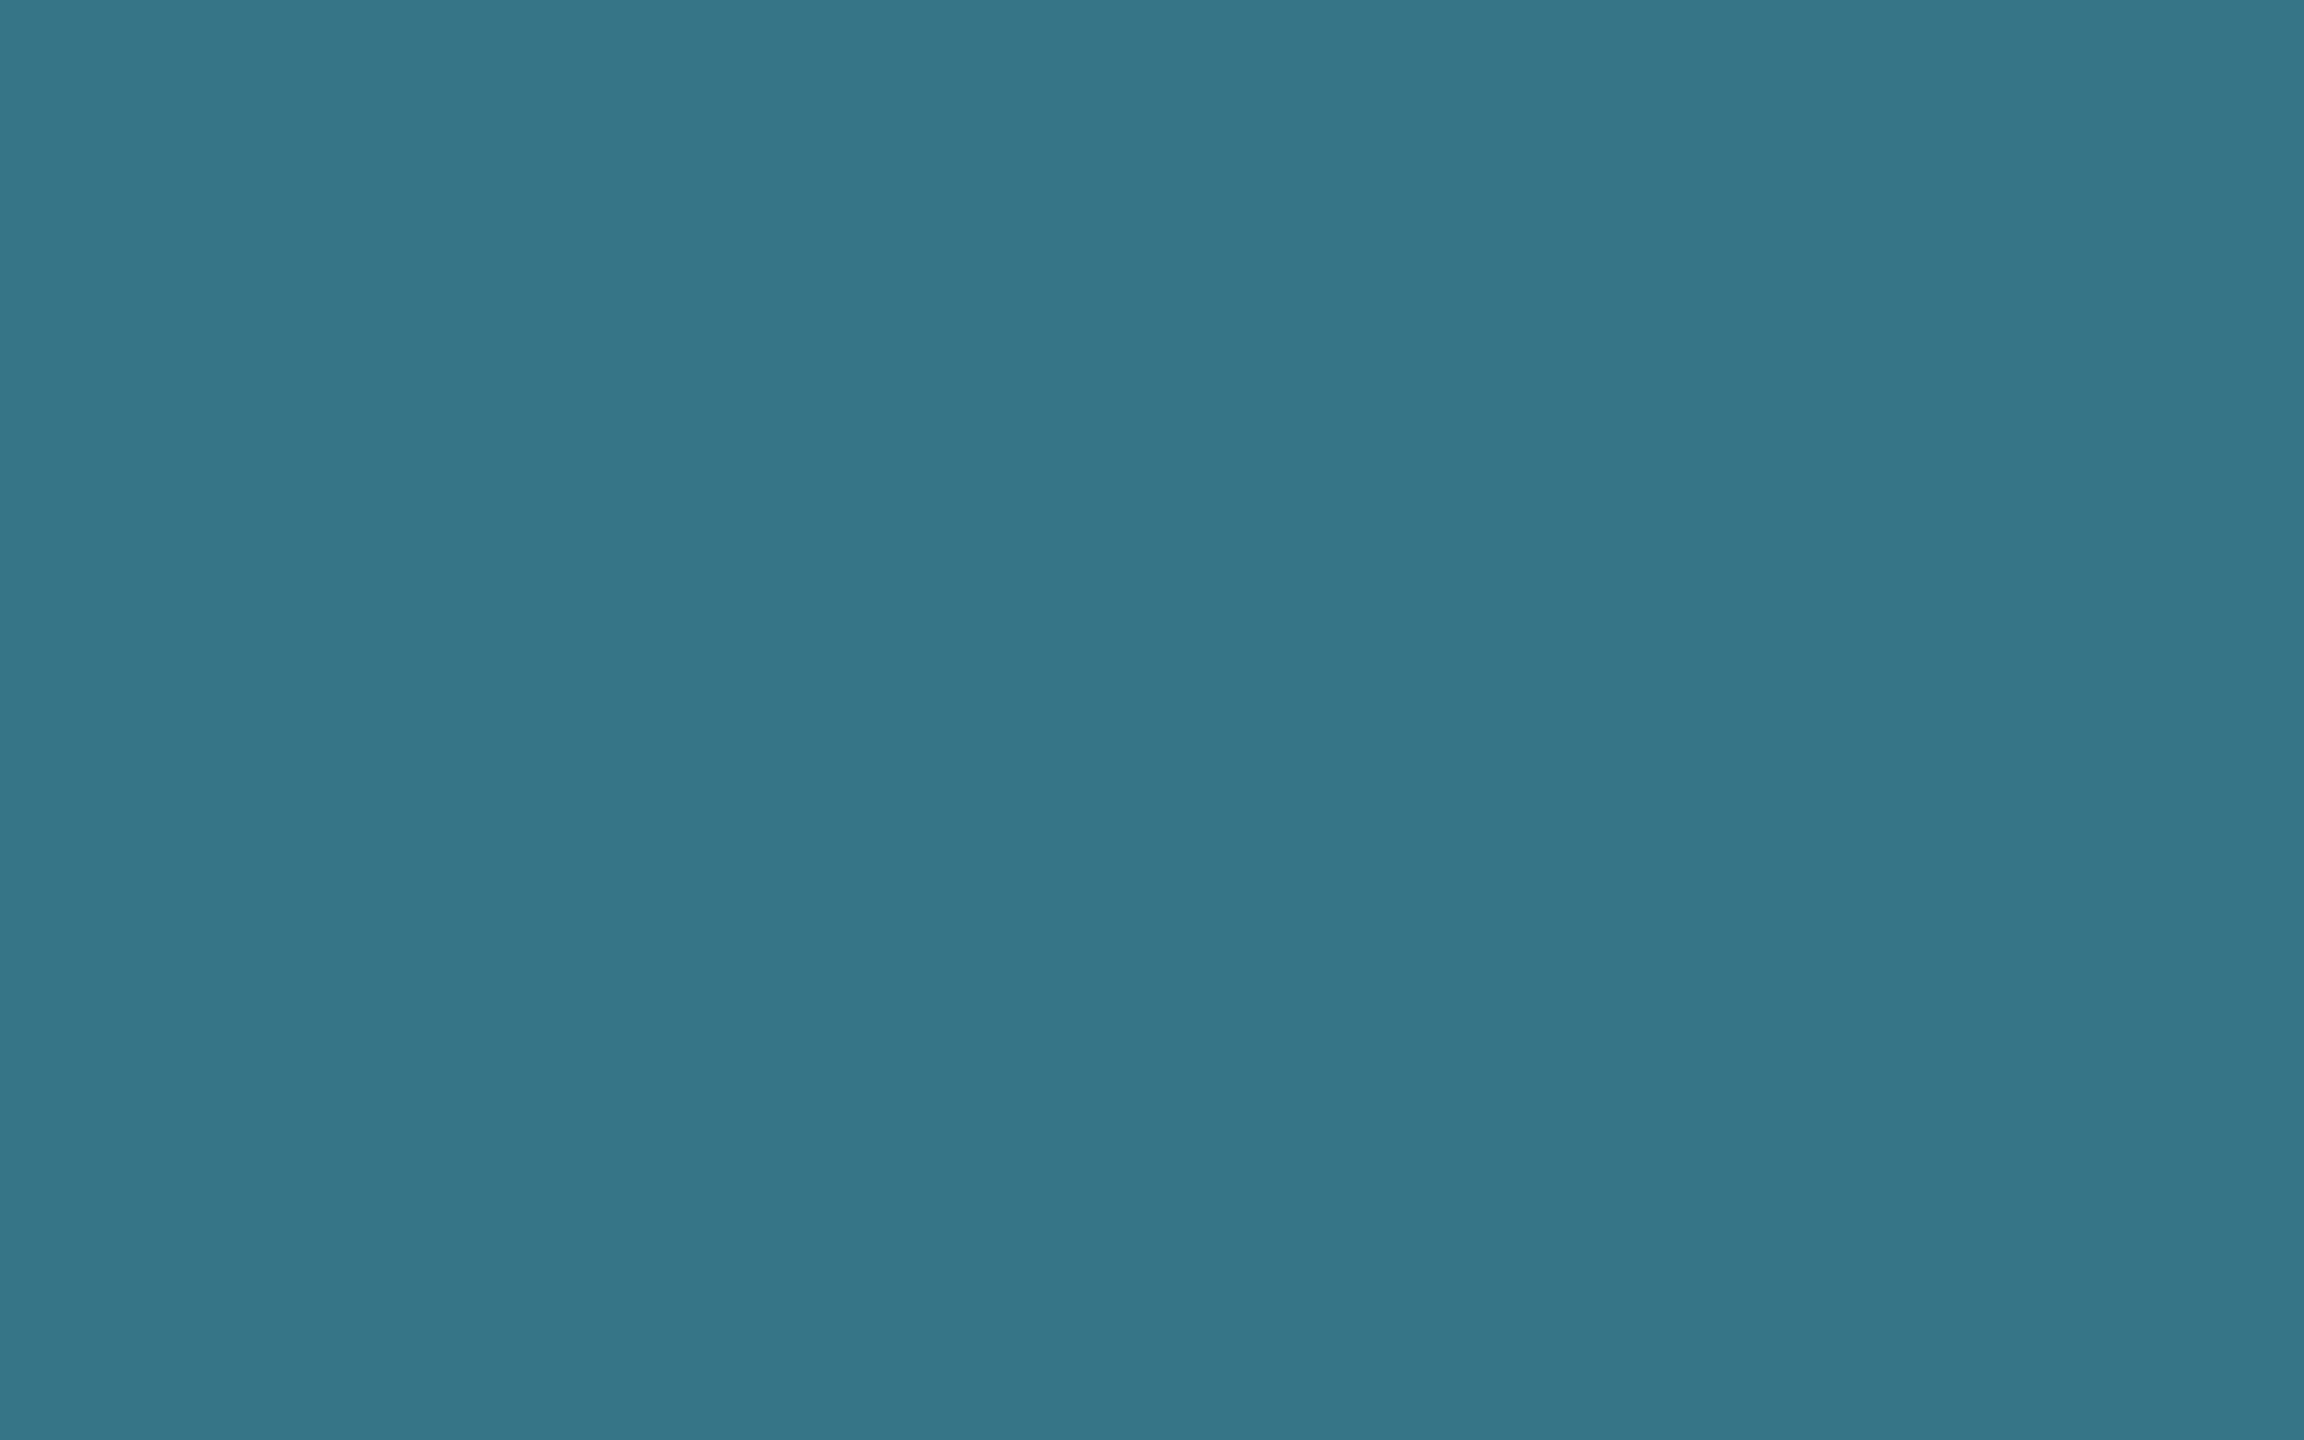 2304x1440 Teal Blue Solid Color Background